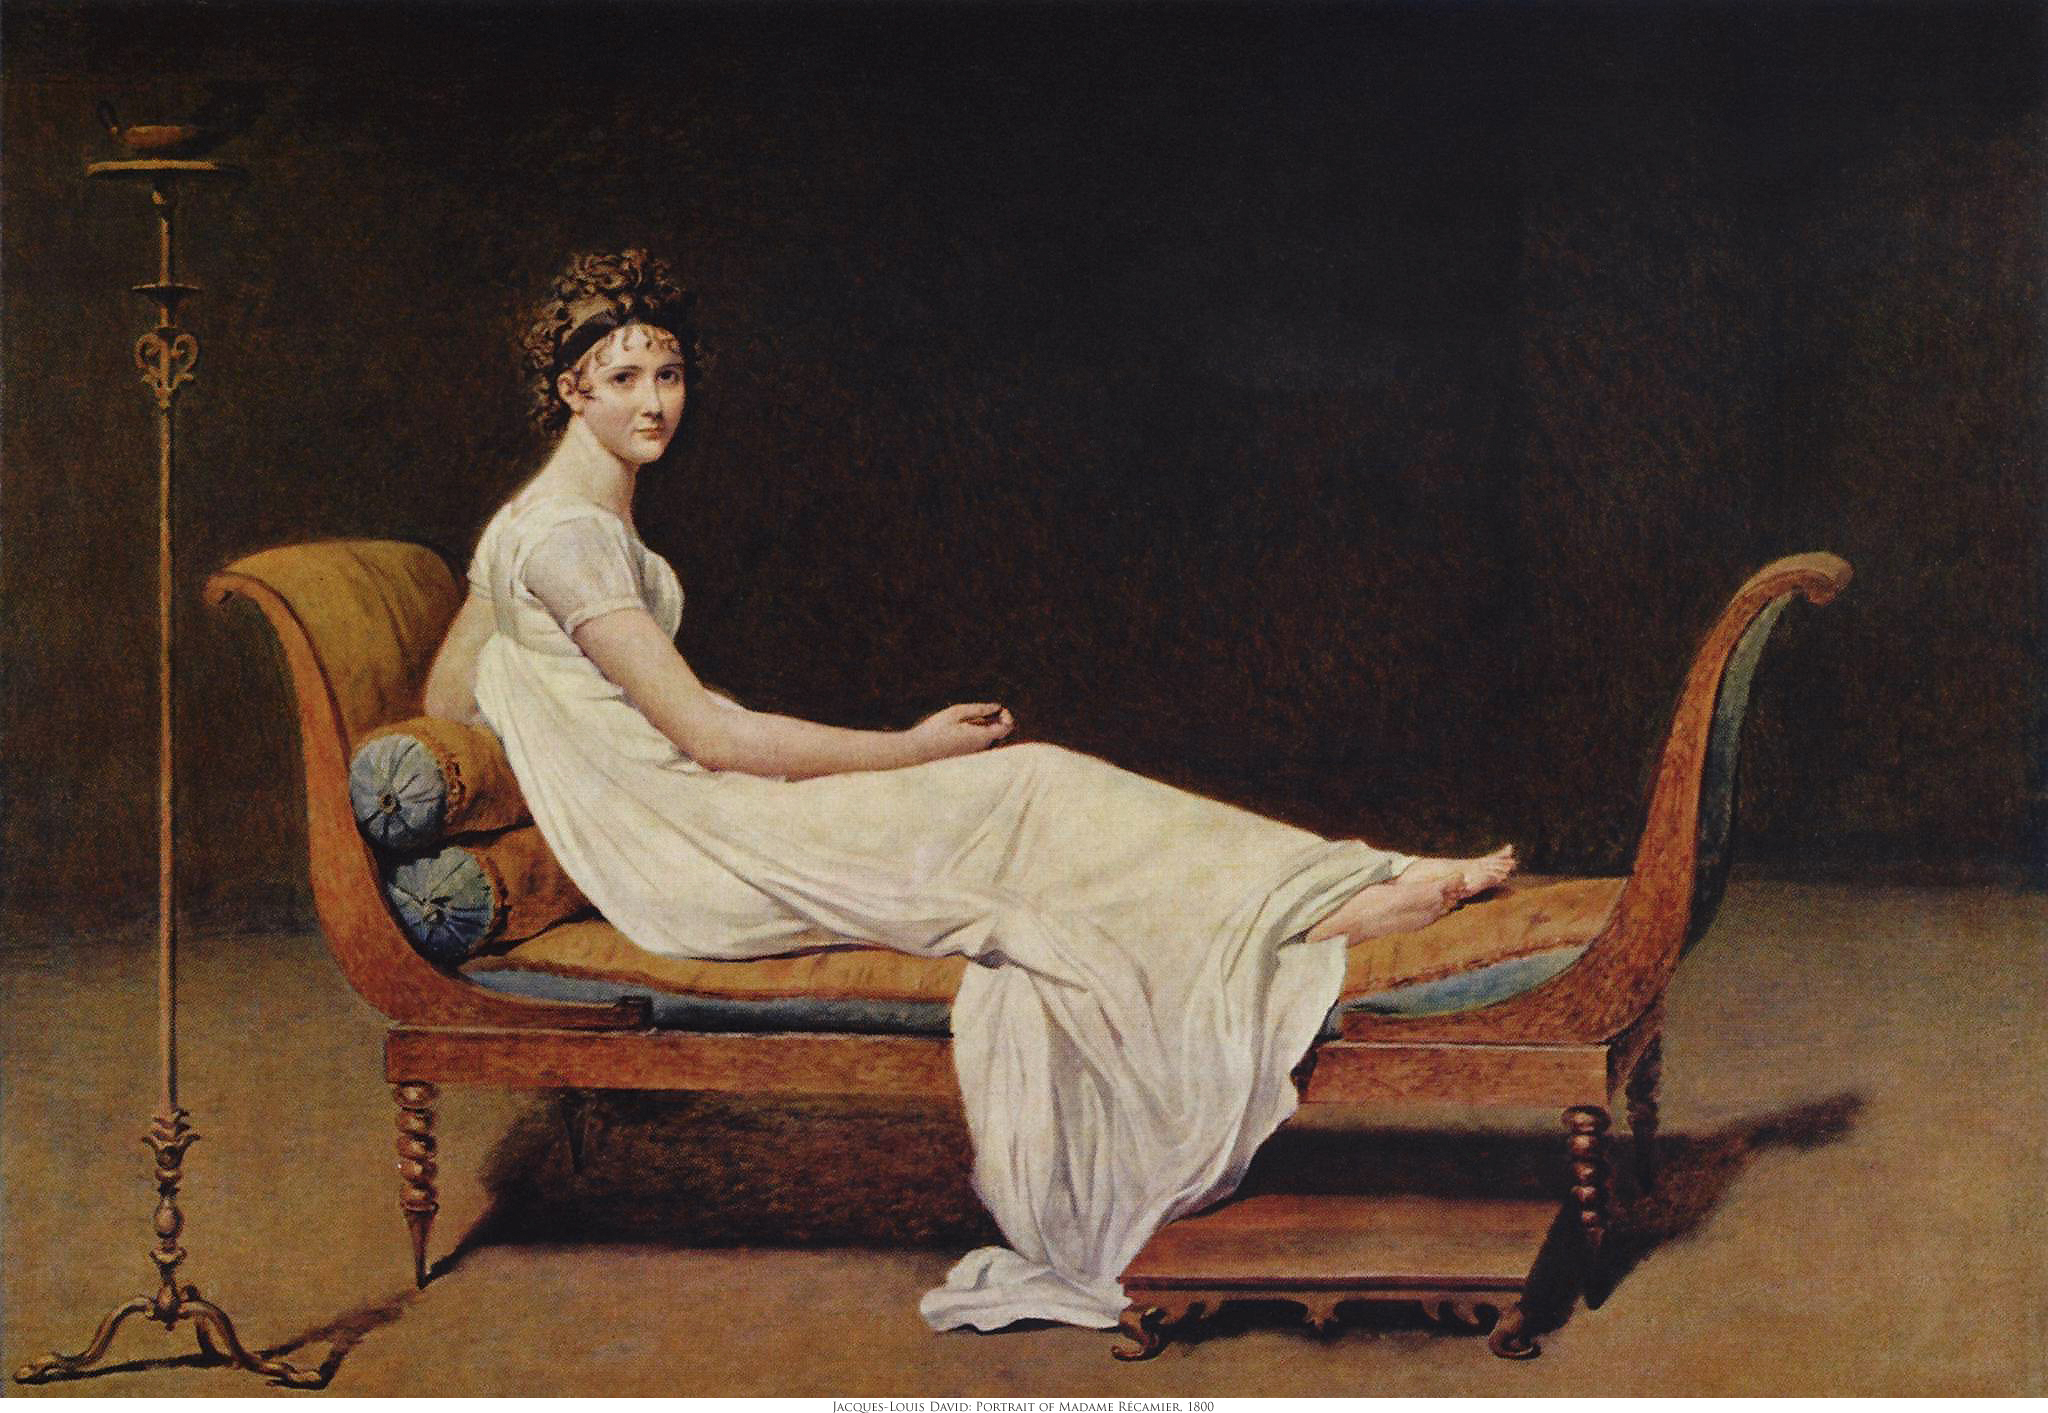 paintings grande odalisque and resting girl The avant-garde in the 19th century his la grande odalisque (1814, 64) is a voluptuous portrayal of a nude woman posed as a harem girl.